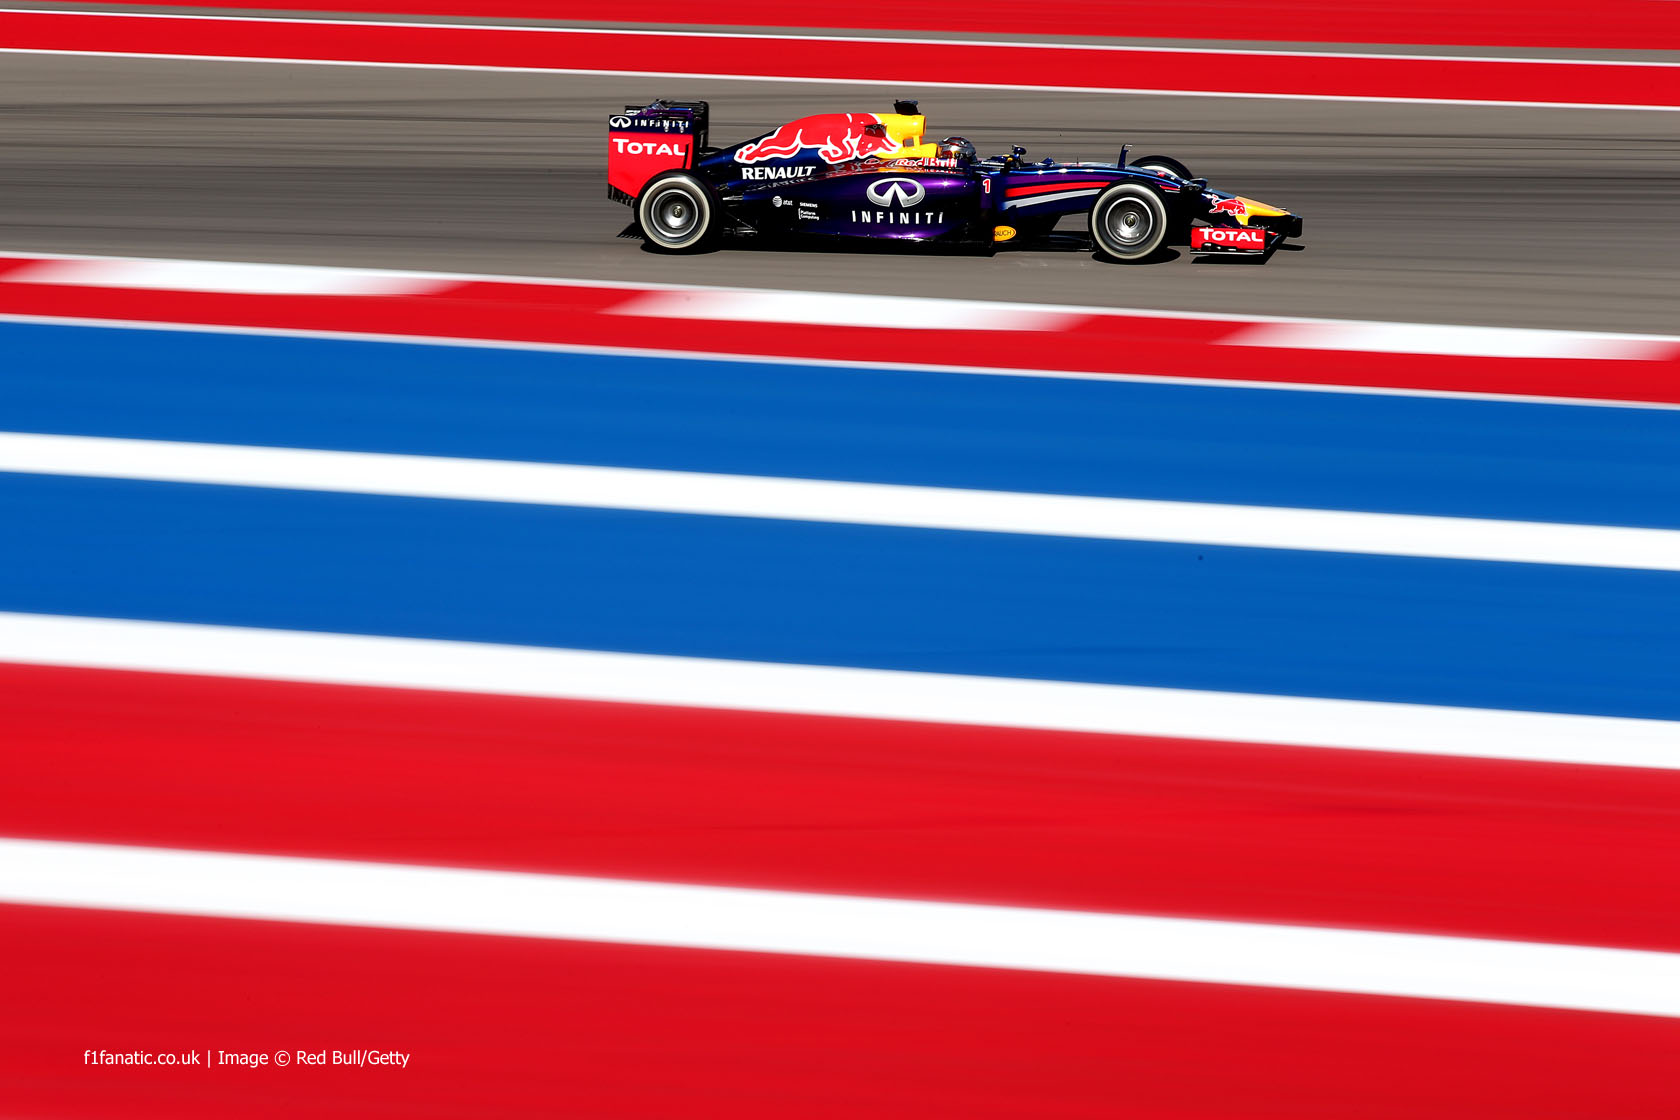 F1 Grand Prix of USA - Practice